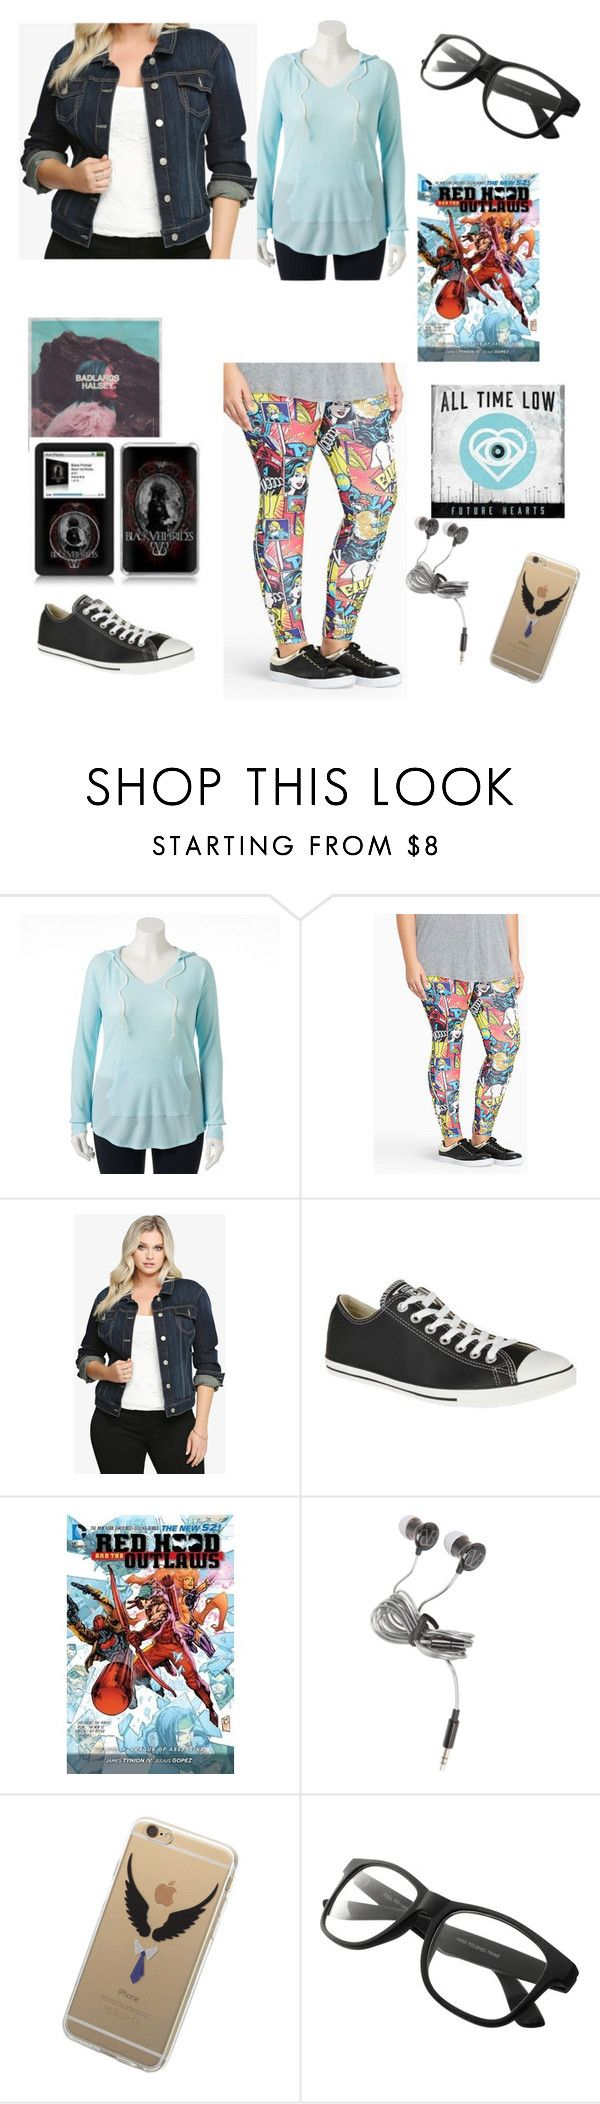 """Going To Snow Tomorrow"" by chrissy-cdm ❤ liked on Polyvore featuring SO, Torrid and Converse"